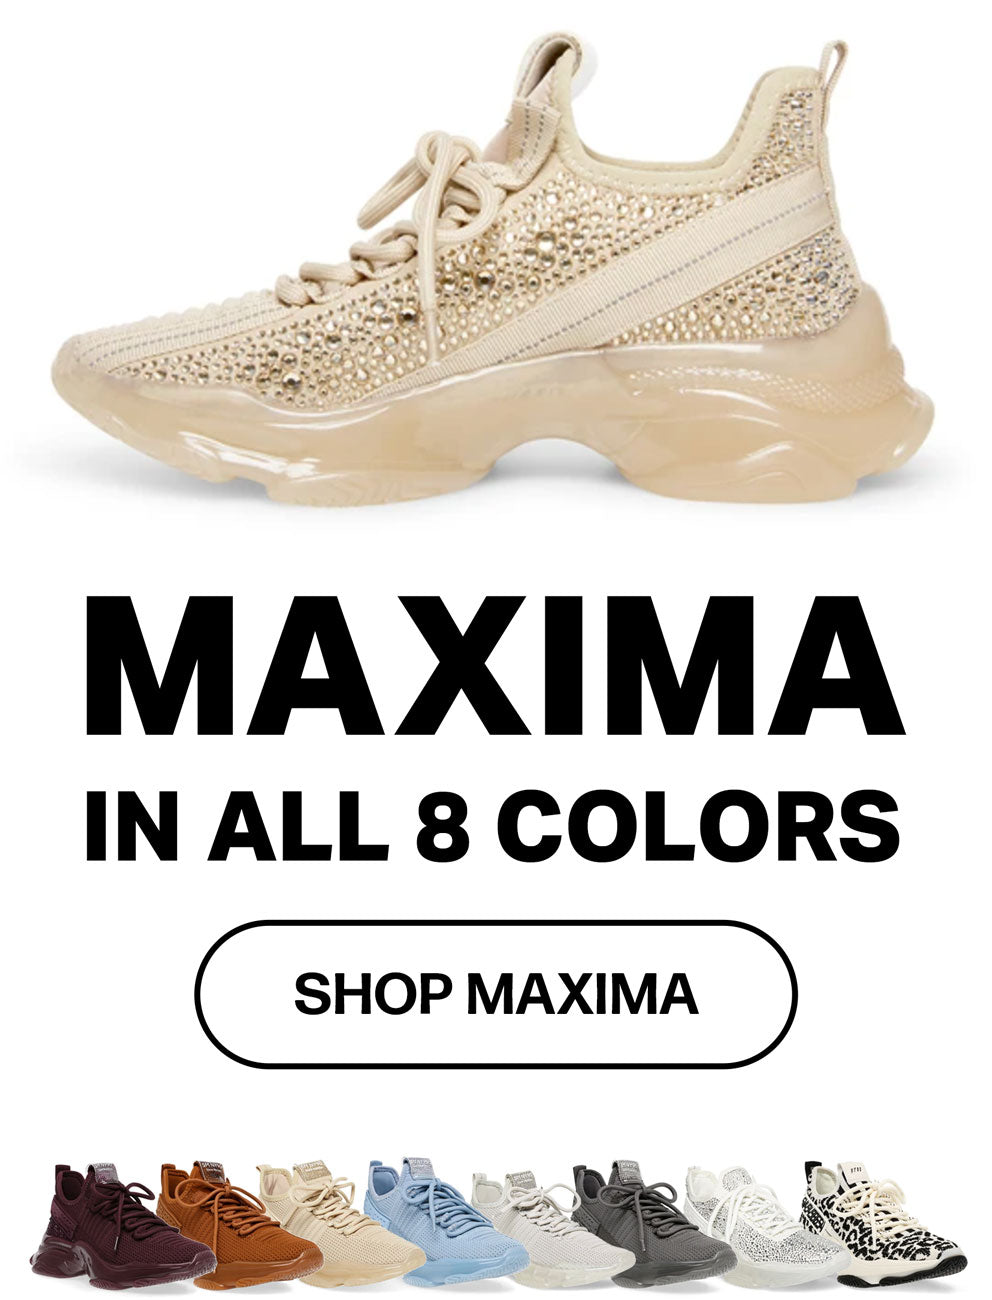 MAXIMA IN ALL 8 COLORS BANNERS- SHOP MAXIMA